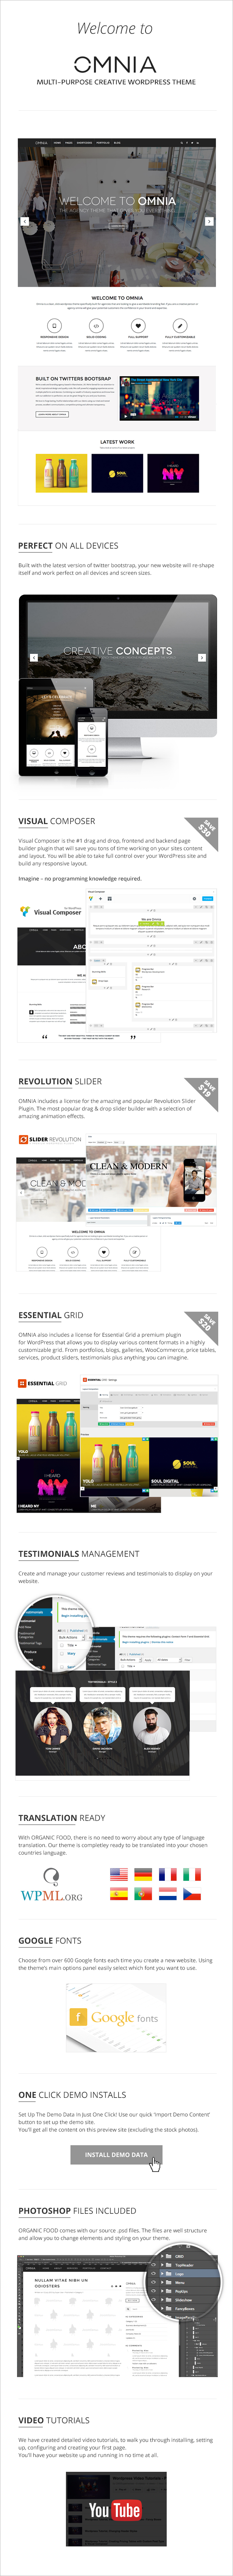 OMNIA - Multipurpose, Creative WordPress Theme